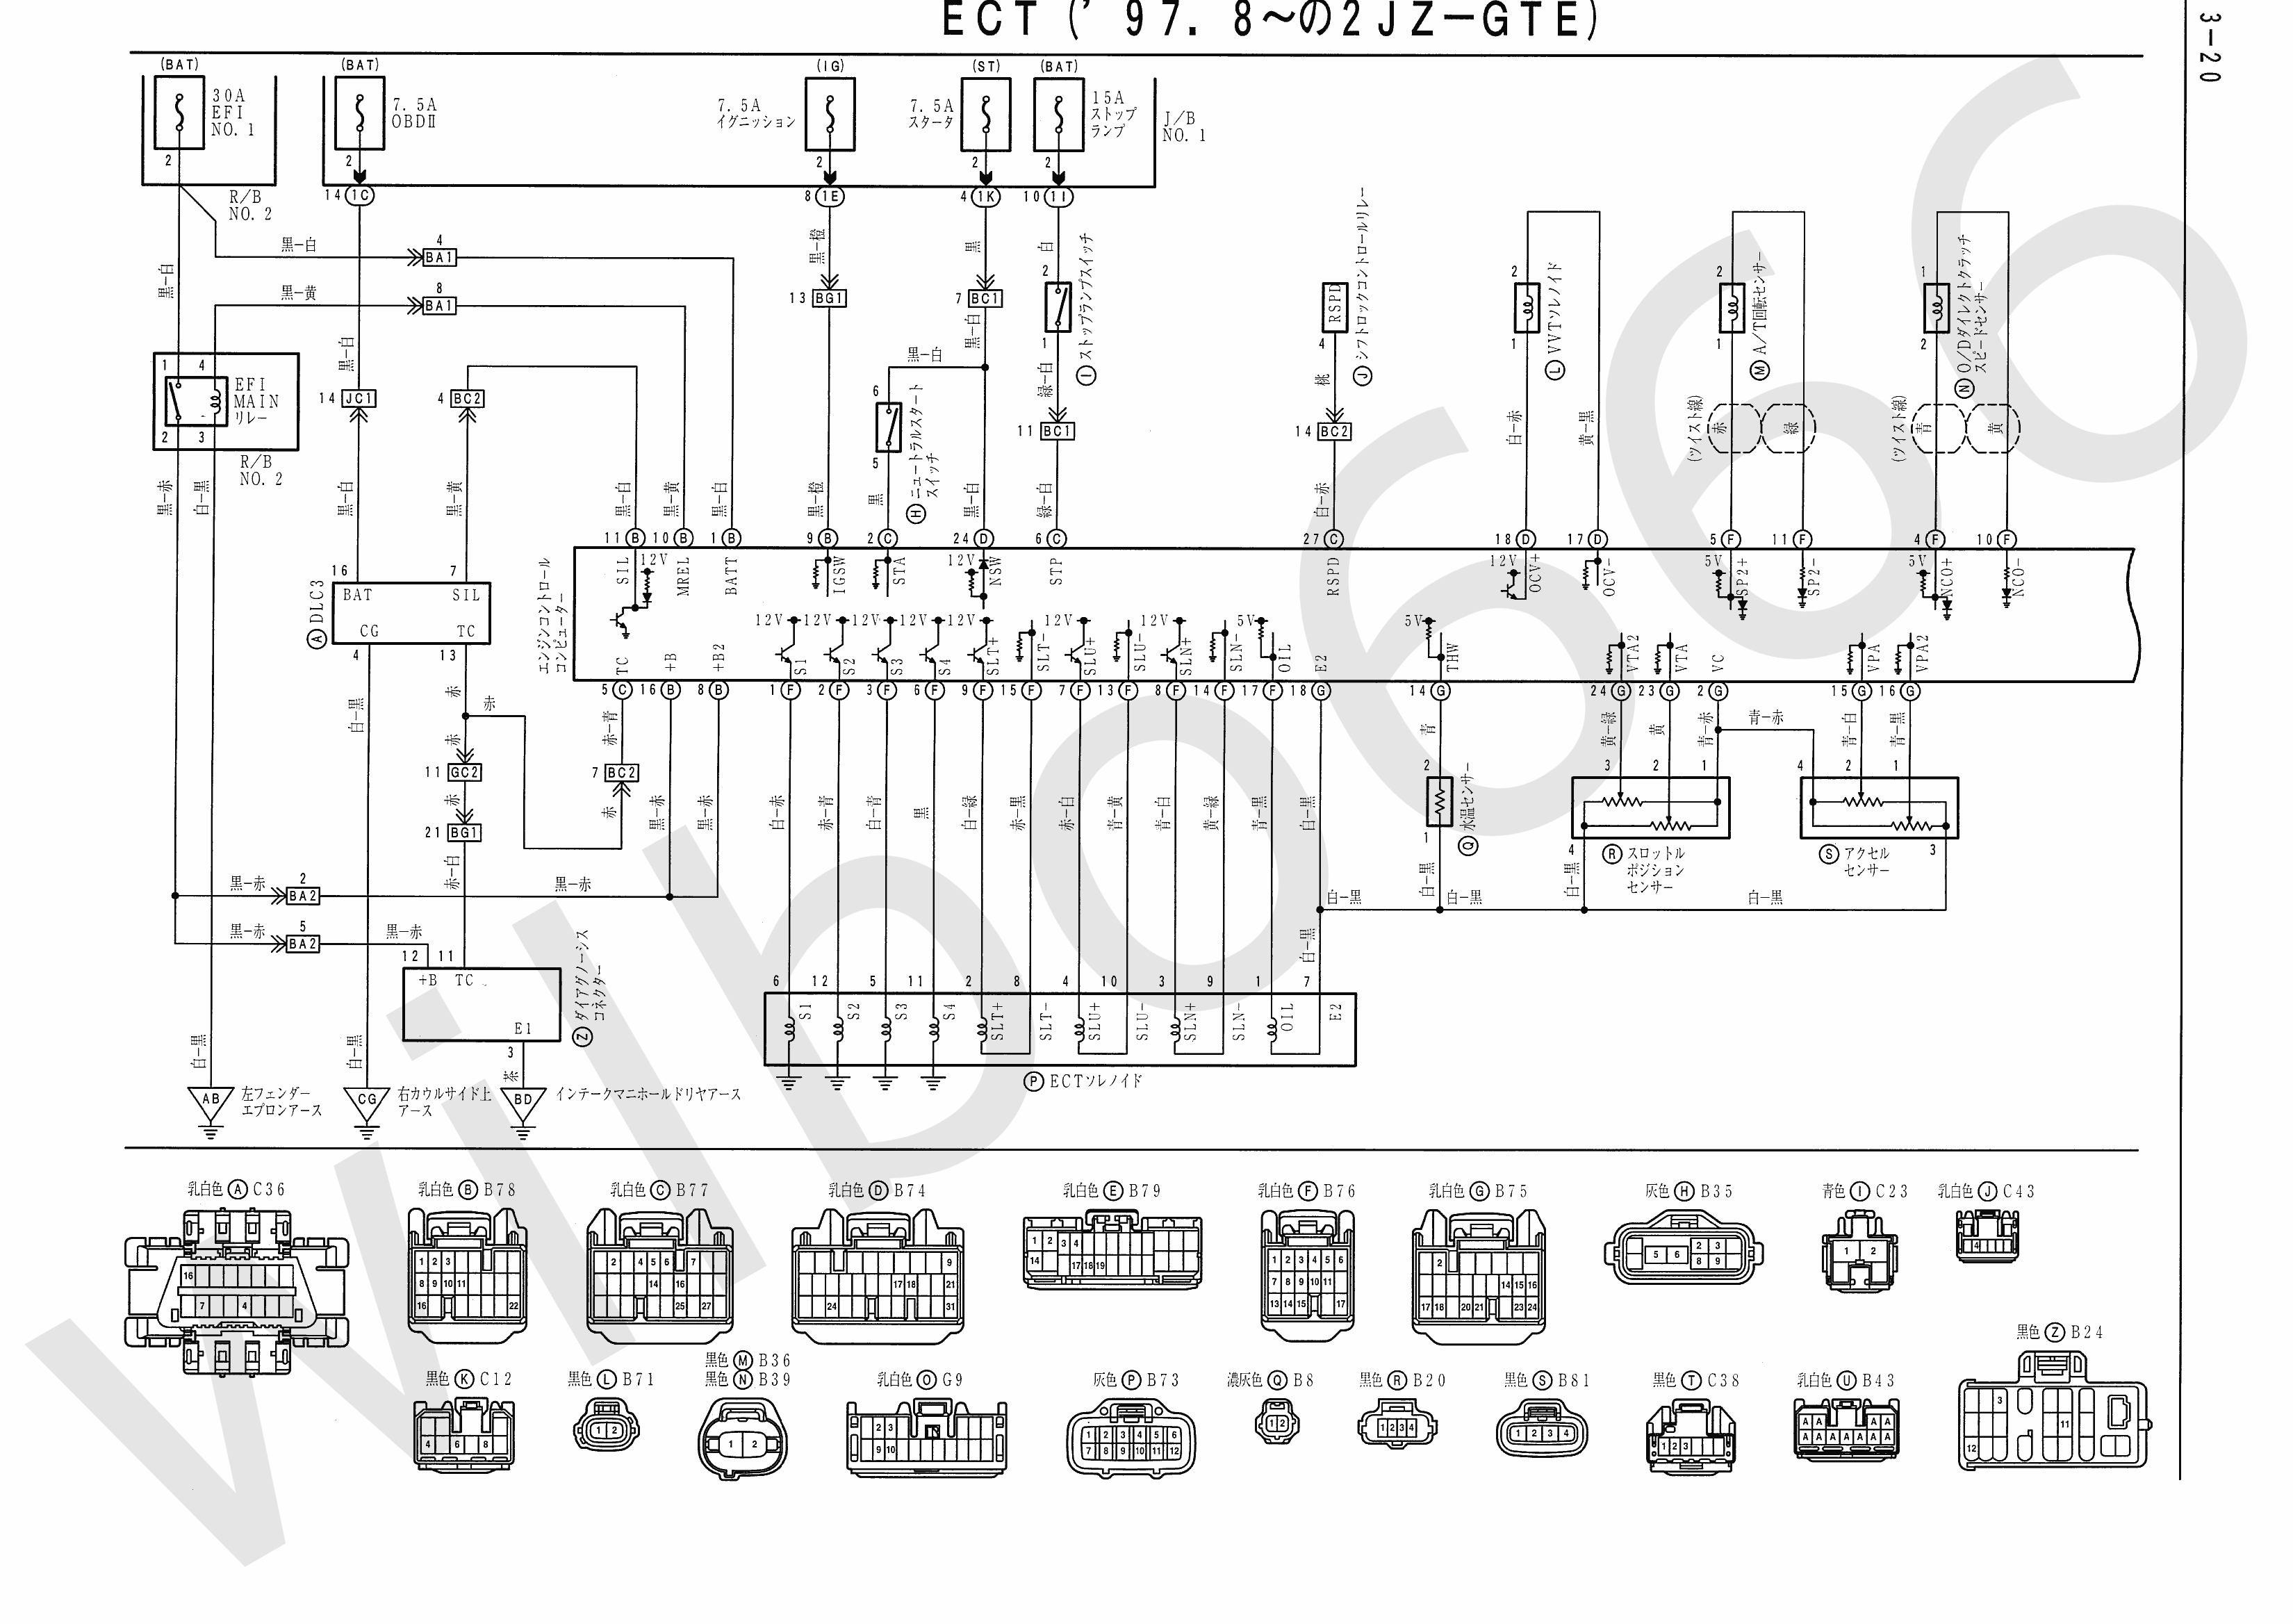 2jz gte engine wiring diagram